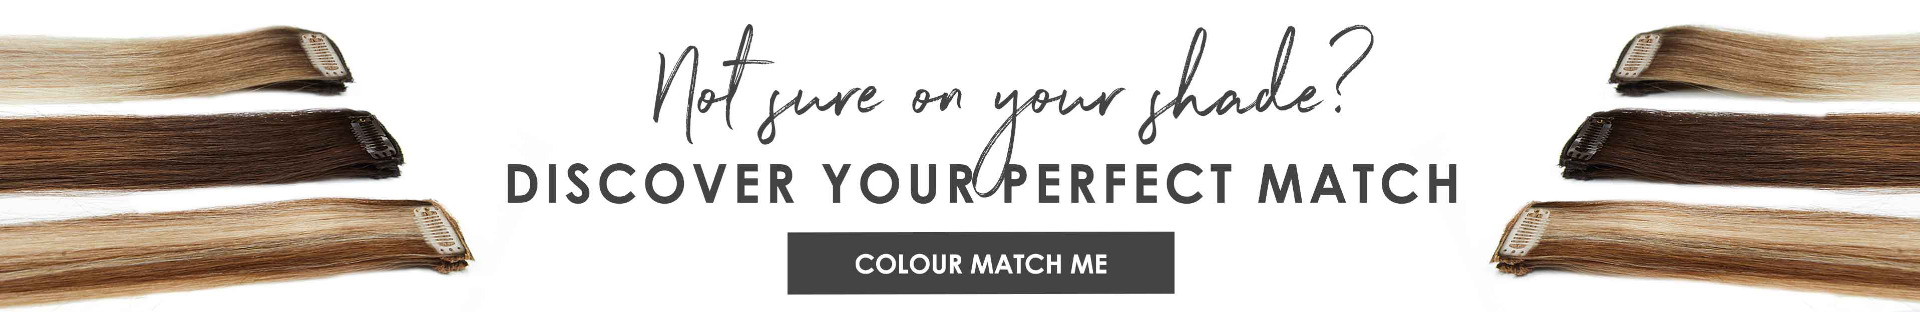 Not sure on your shade? Discover your perfect match